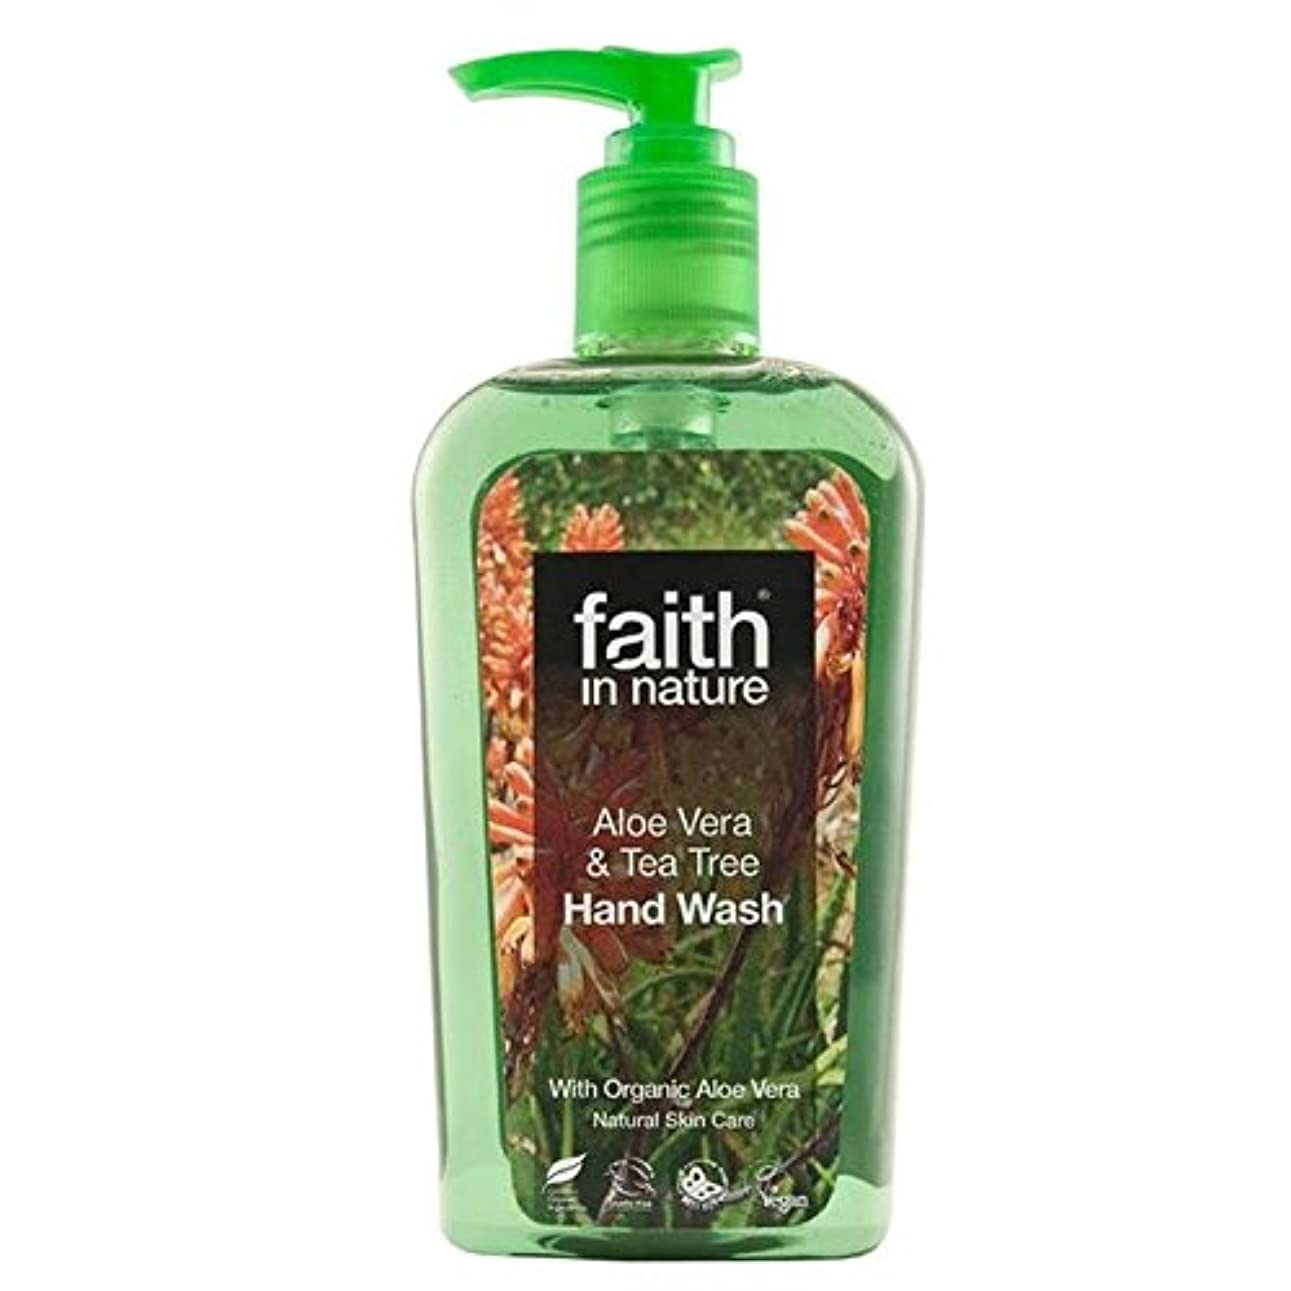 Faith in Nature Aloe Vera & Tea Tree Handwash 300ml (Pack of 6) - (Faith In Nature) 自然のアロエベラ&ティーツリー手洗いの300ミリリットル...